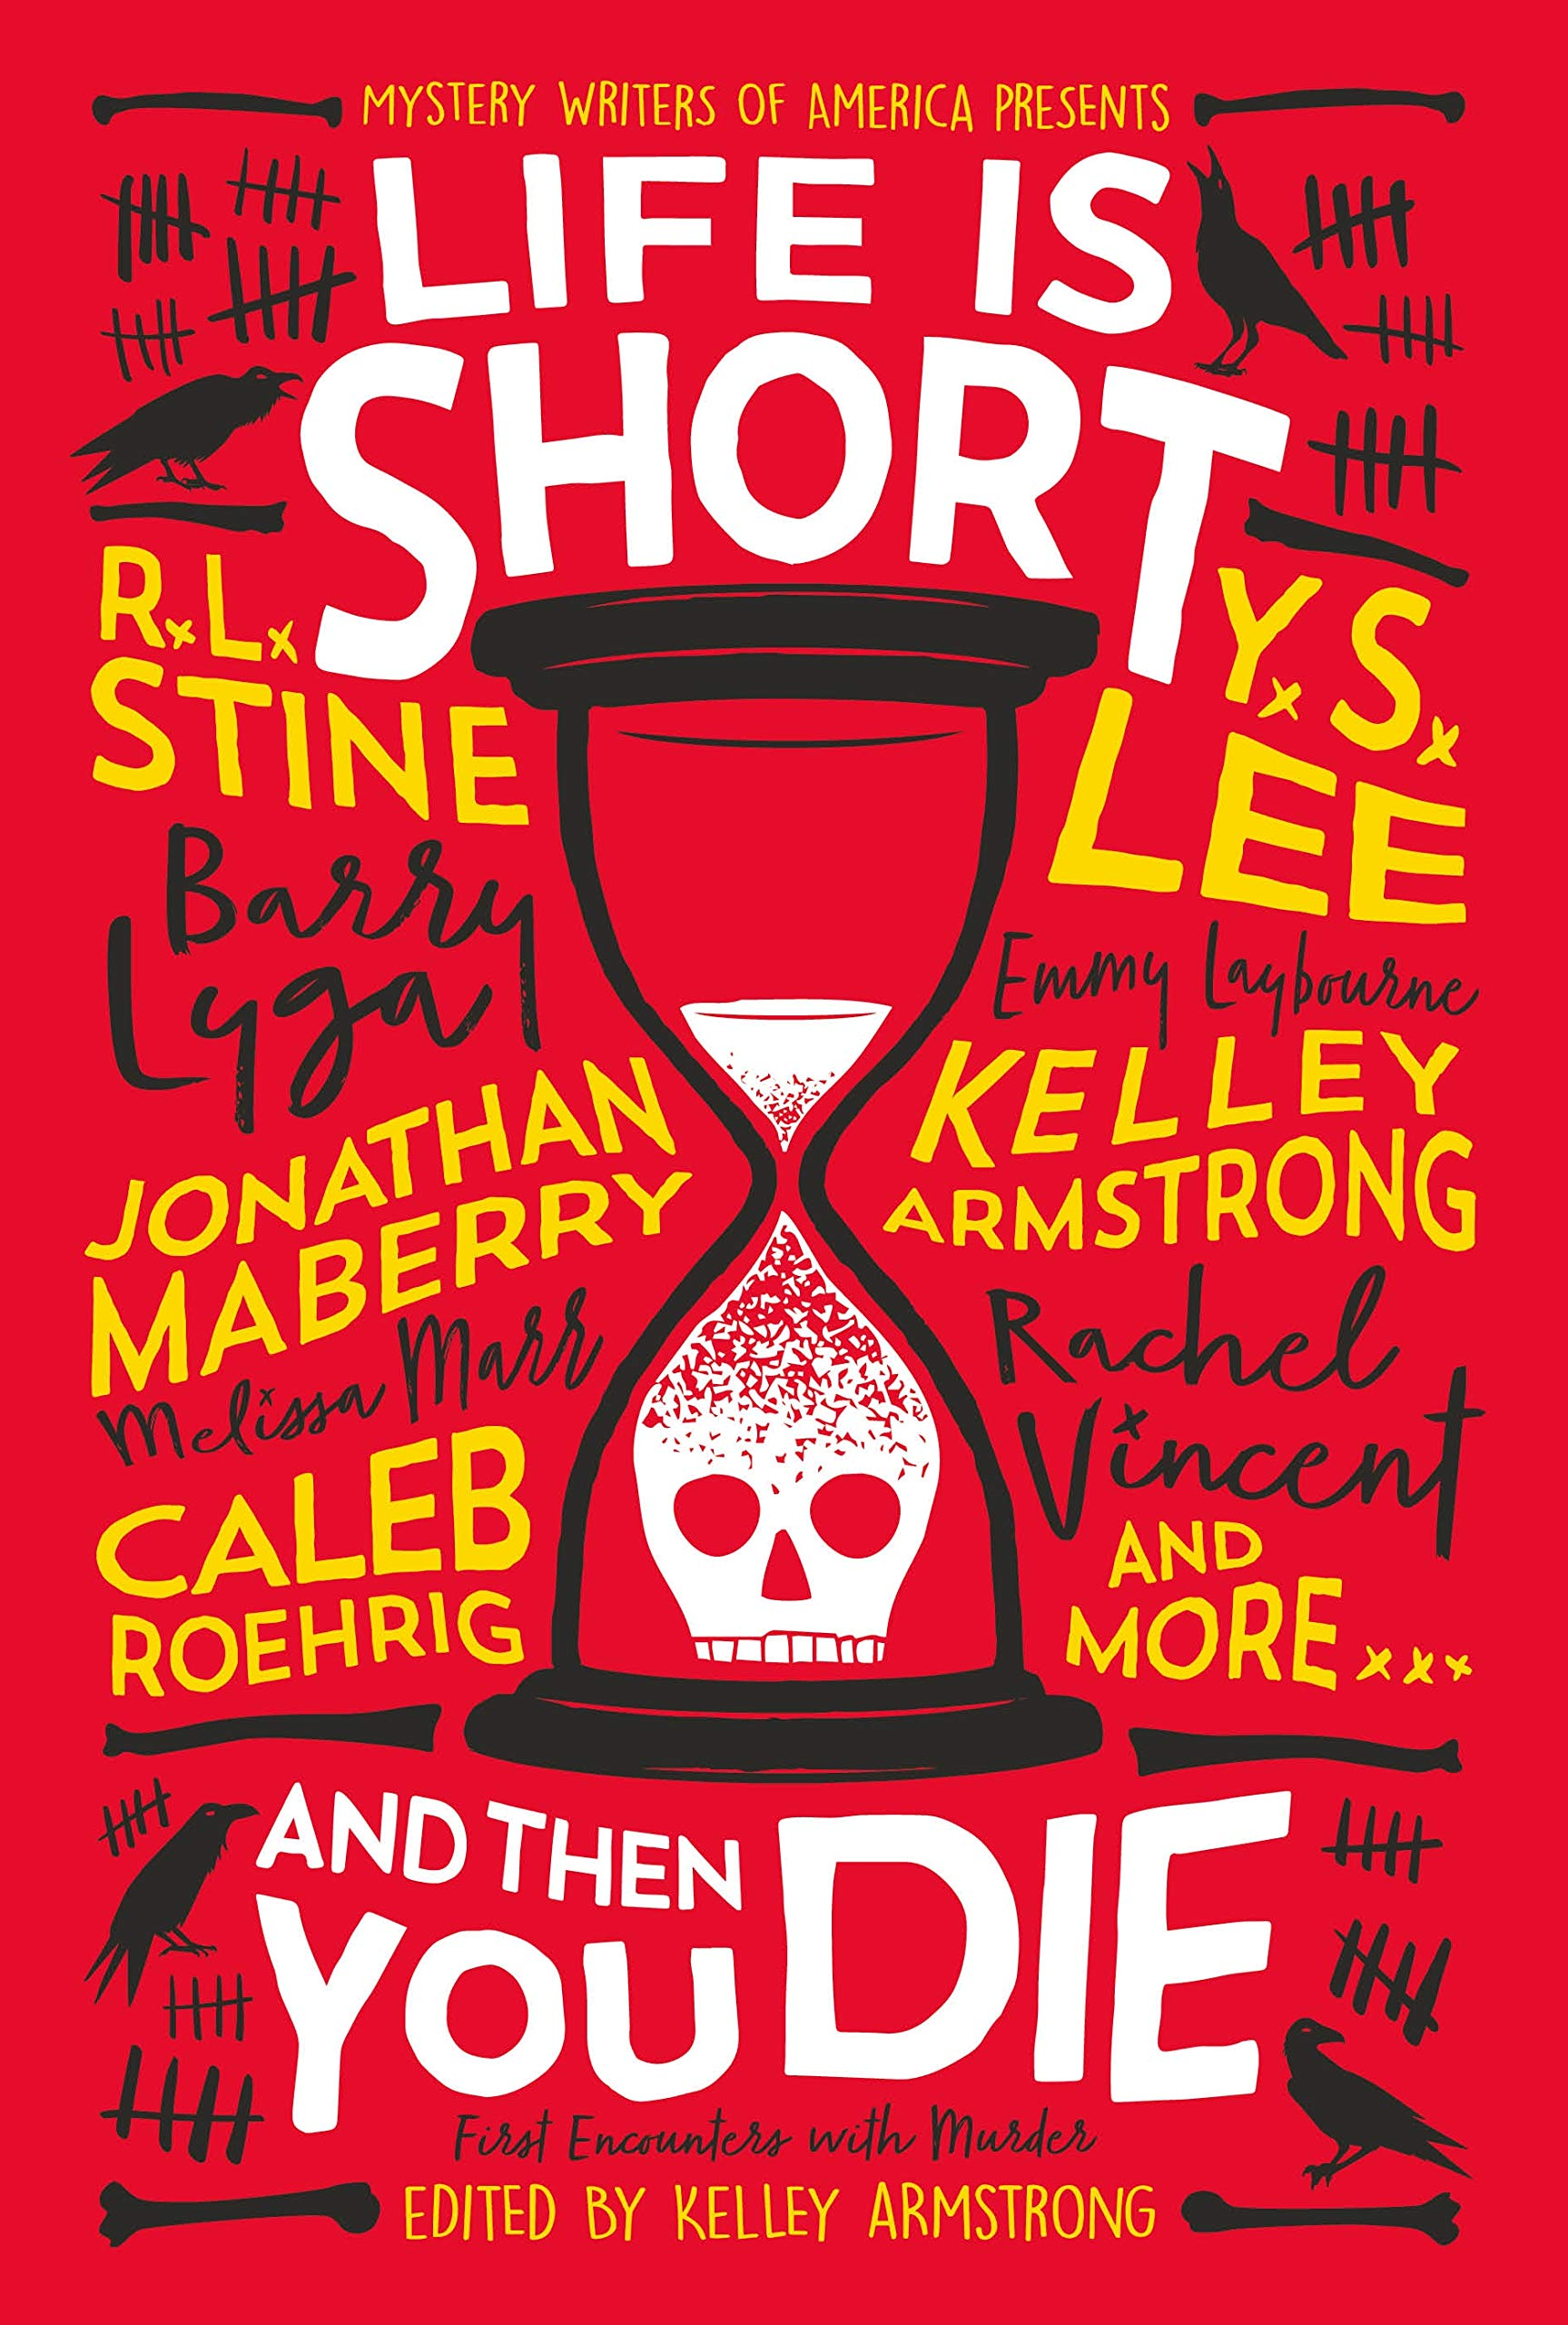 Life is Short and Then You Die: Mystery Writers of America Presents First Encounters With Murder edited by Kelley Armstrong